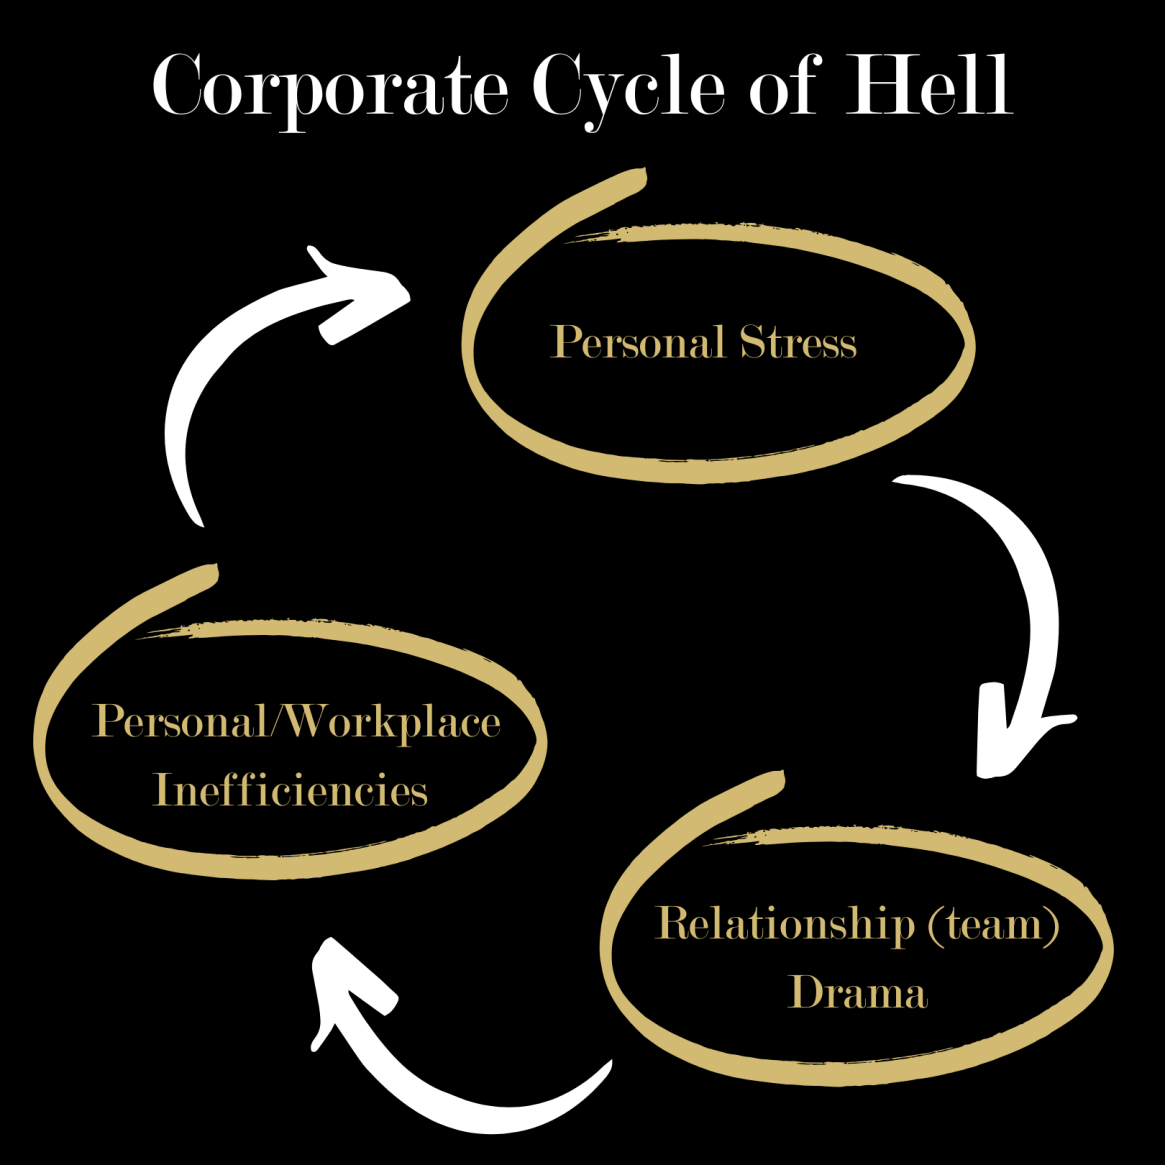 Corporate Cycle of Hell